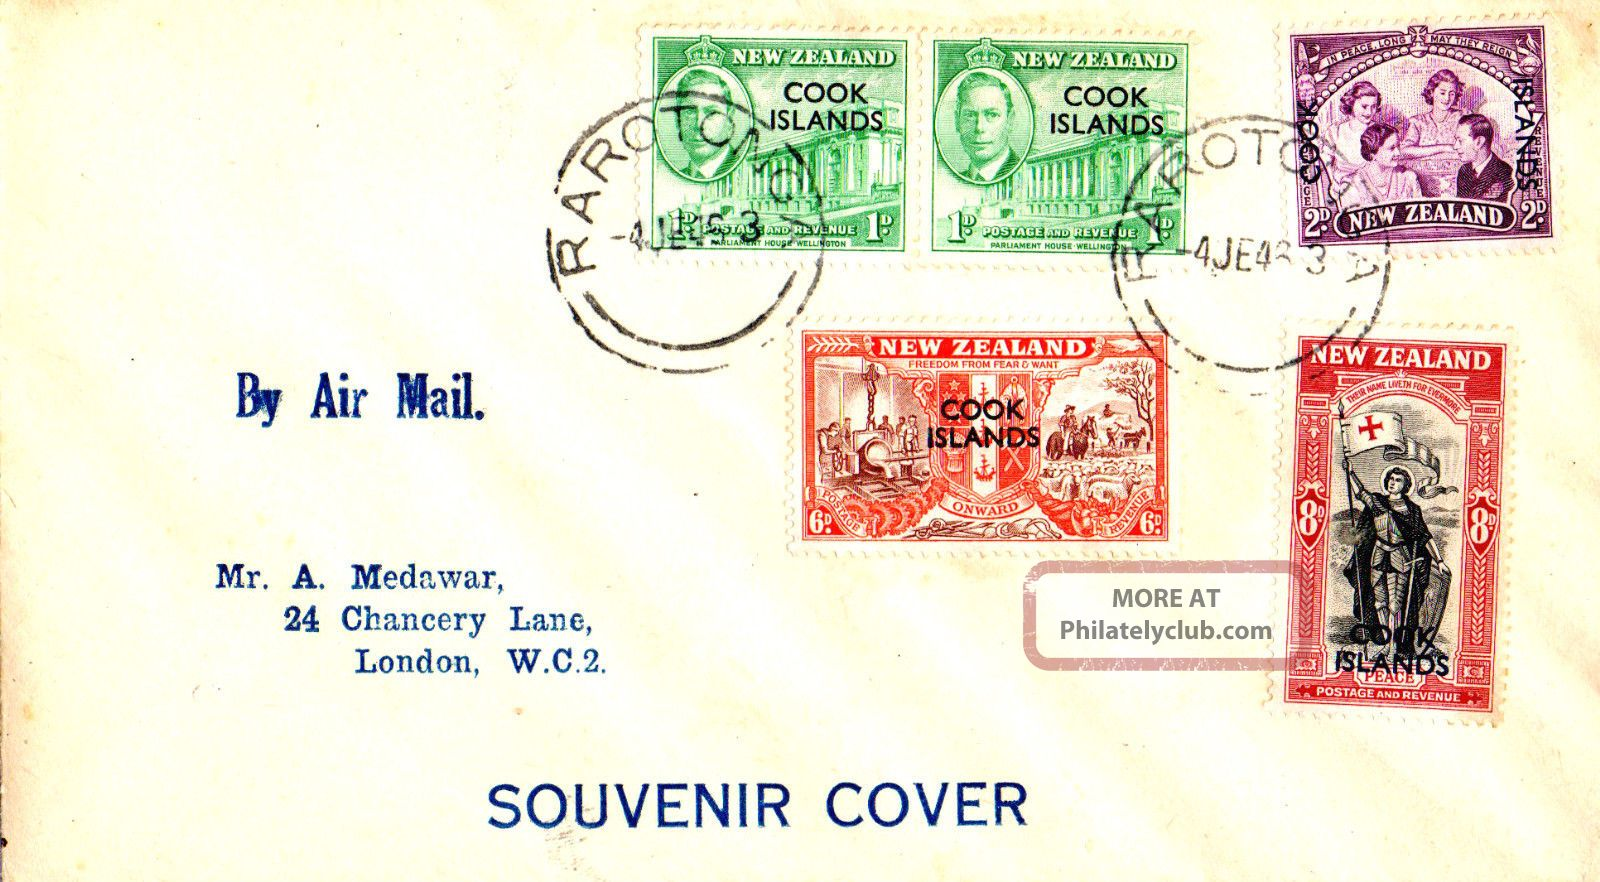 Cook Islands 1946 Zealand Peace Overprinted First Day Cover Cds British Colonies & Territories photo